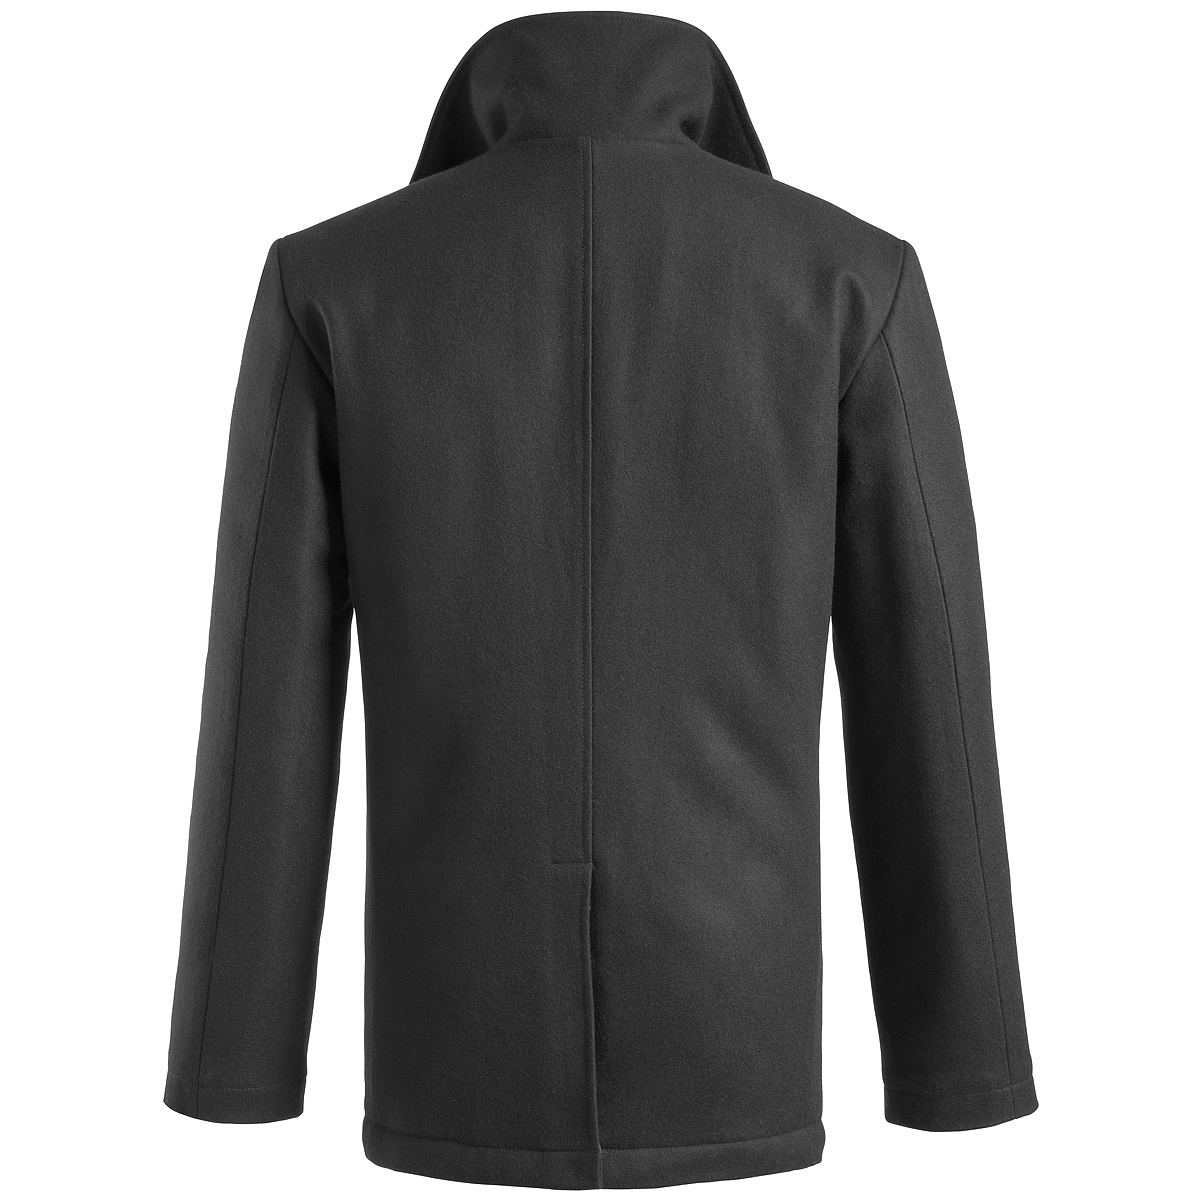 Surplus US Navy Pea Coat Classic Style Warm Mens Army Reefer ...